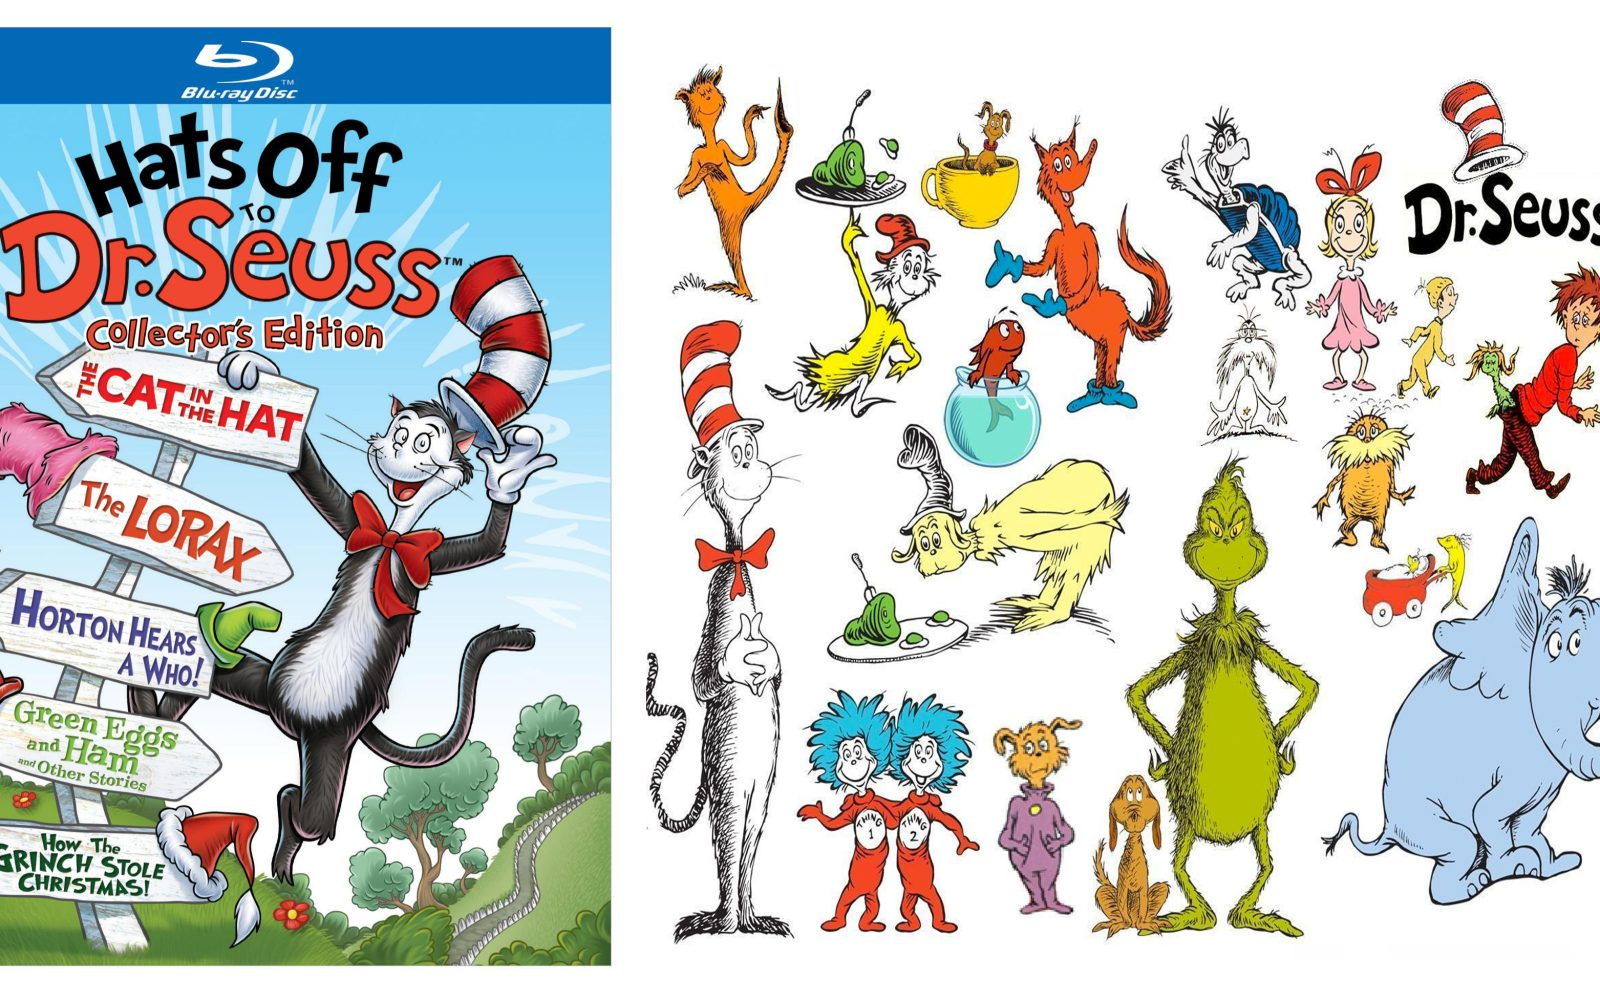 cafd549d Media: Hats Off to Dr. Seuss Collector's Edition from $15 Prime shipped,  Zootopia + Batman v. Superman pre-order deals, more